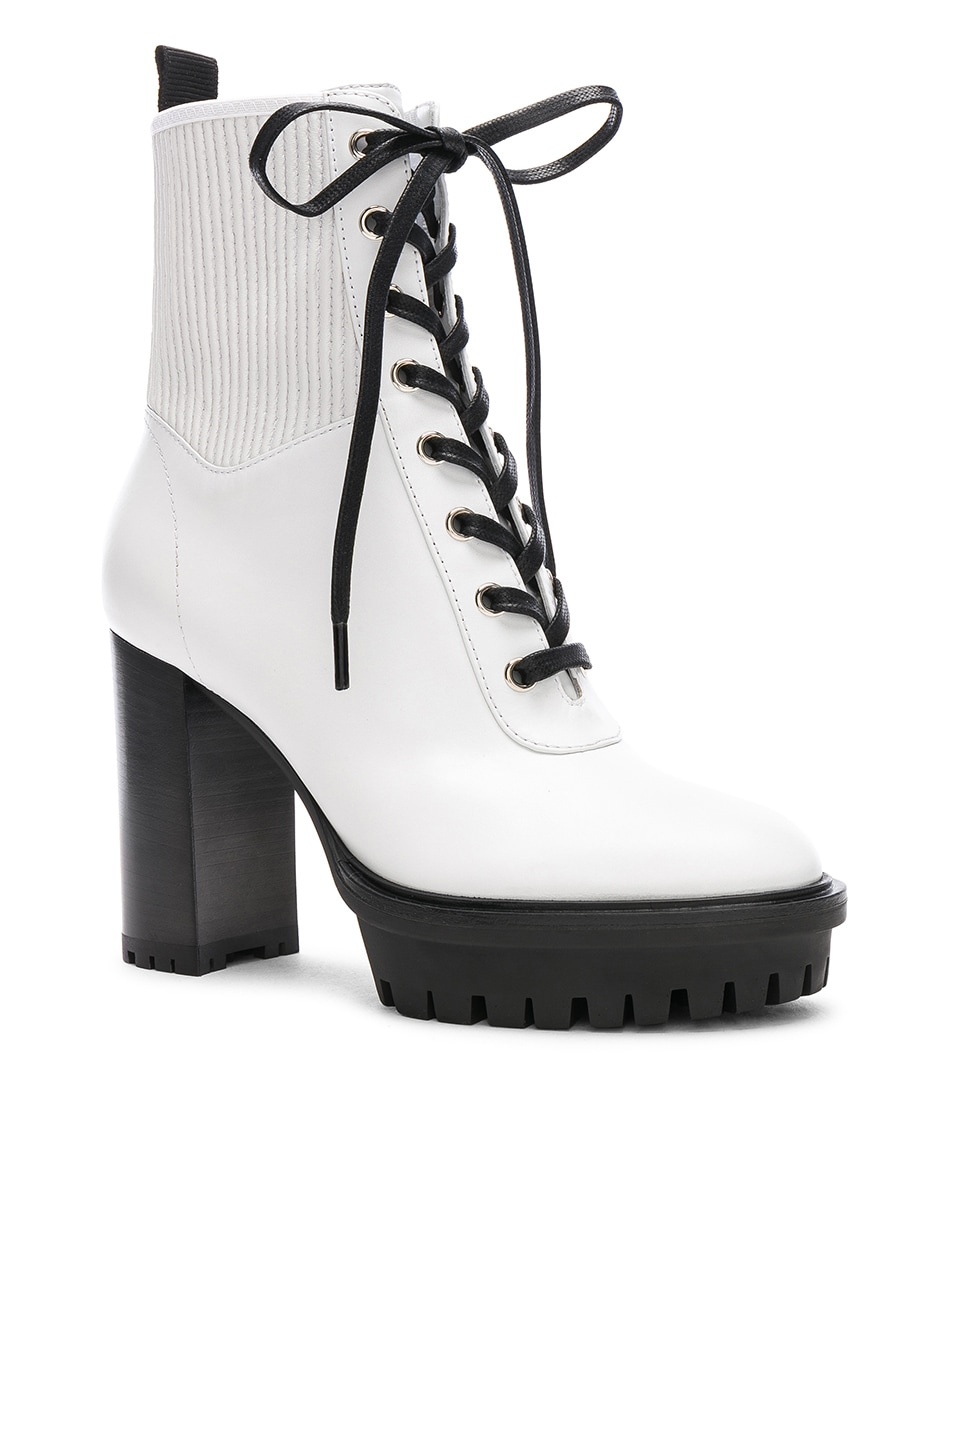 Image 2 of Gianvito Rossi Leather & Eco Stretch Martis Platform Ankle Boots in White